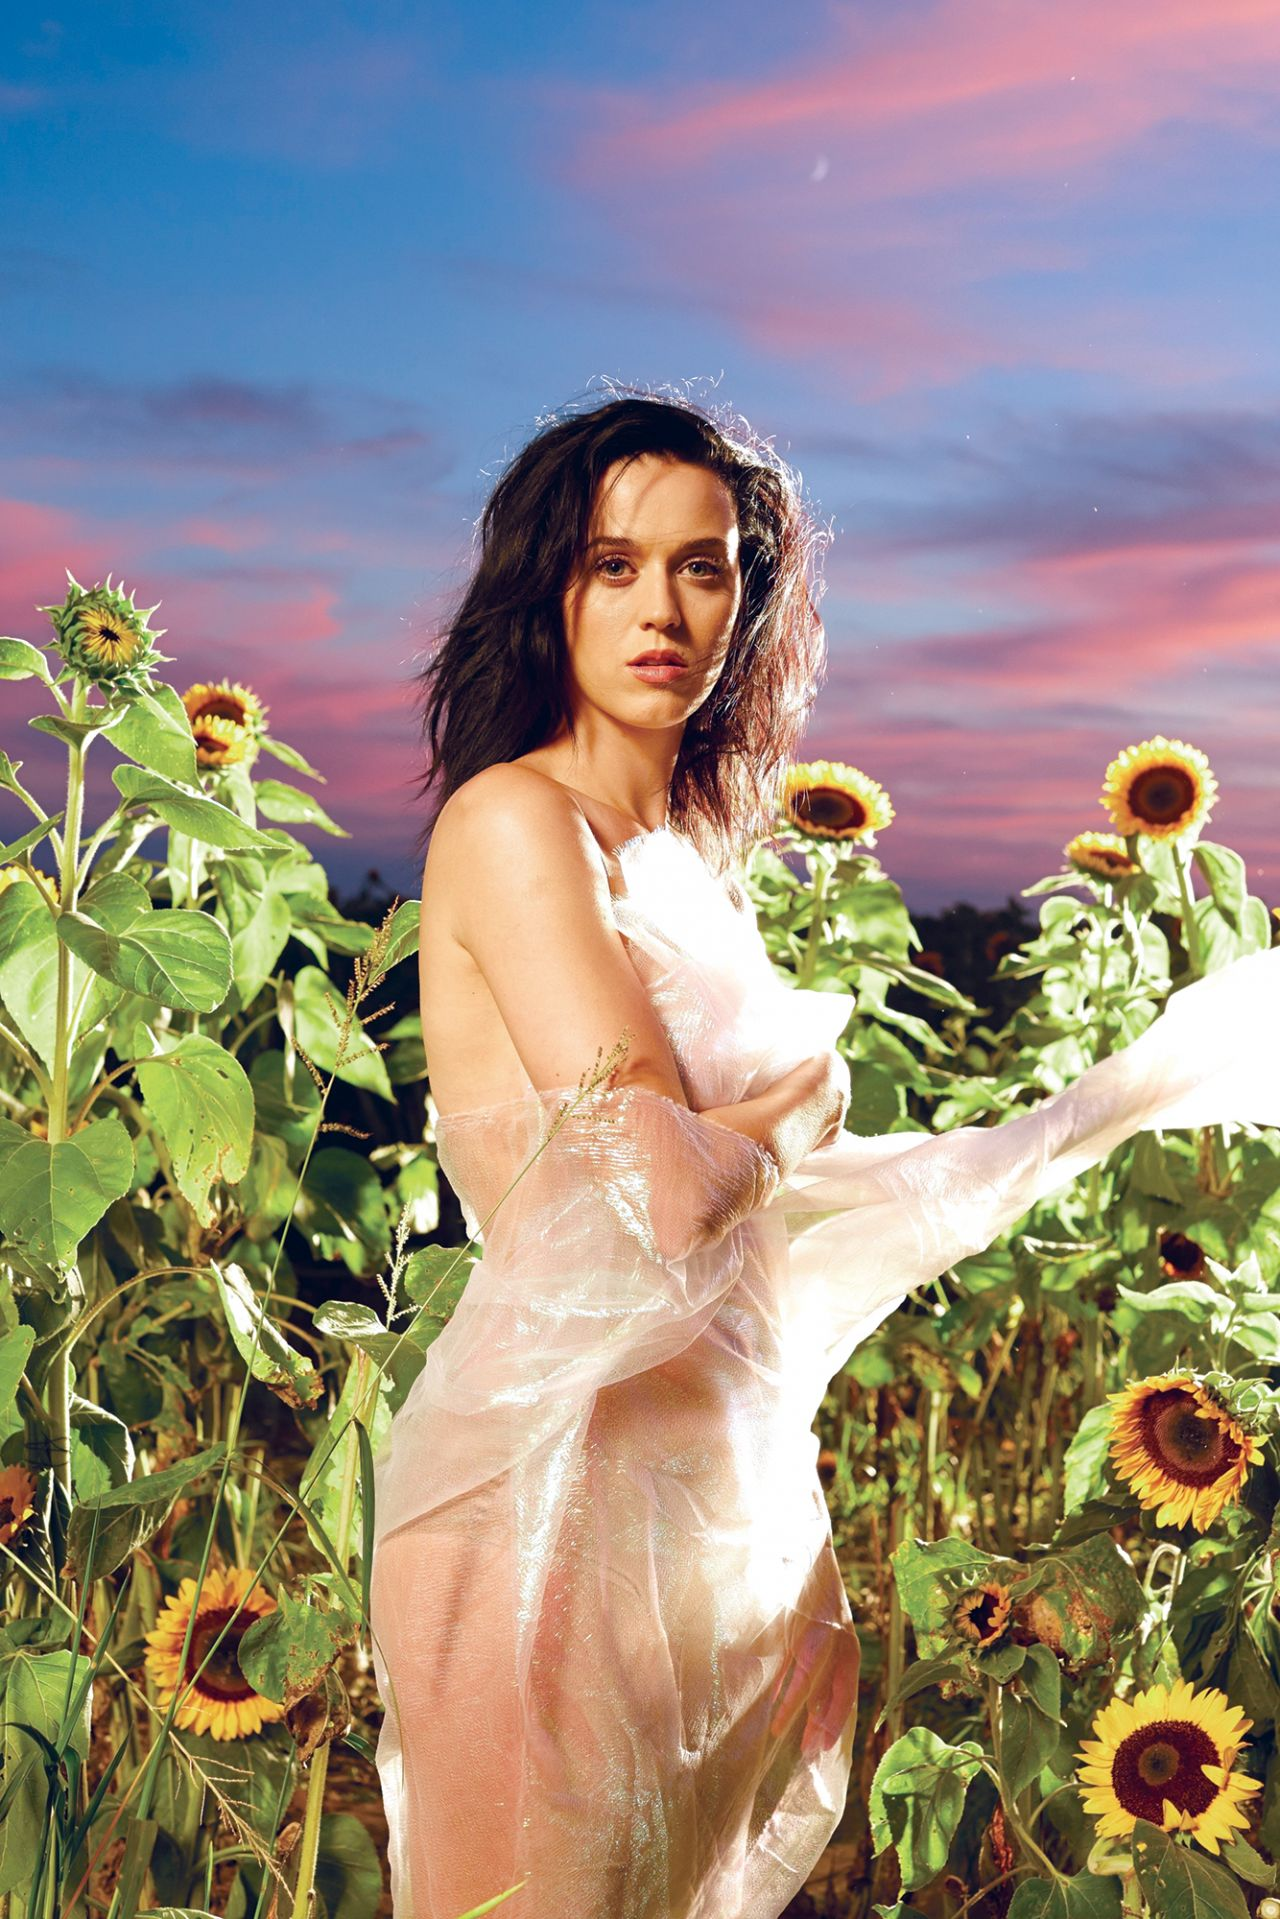 Katy Perry Photoshoot for New Prism (2013)